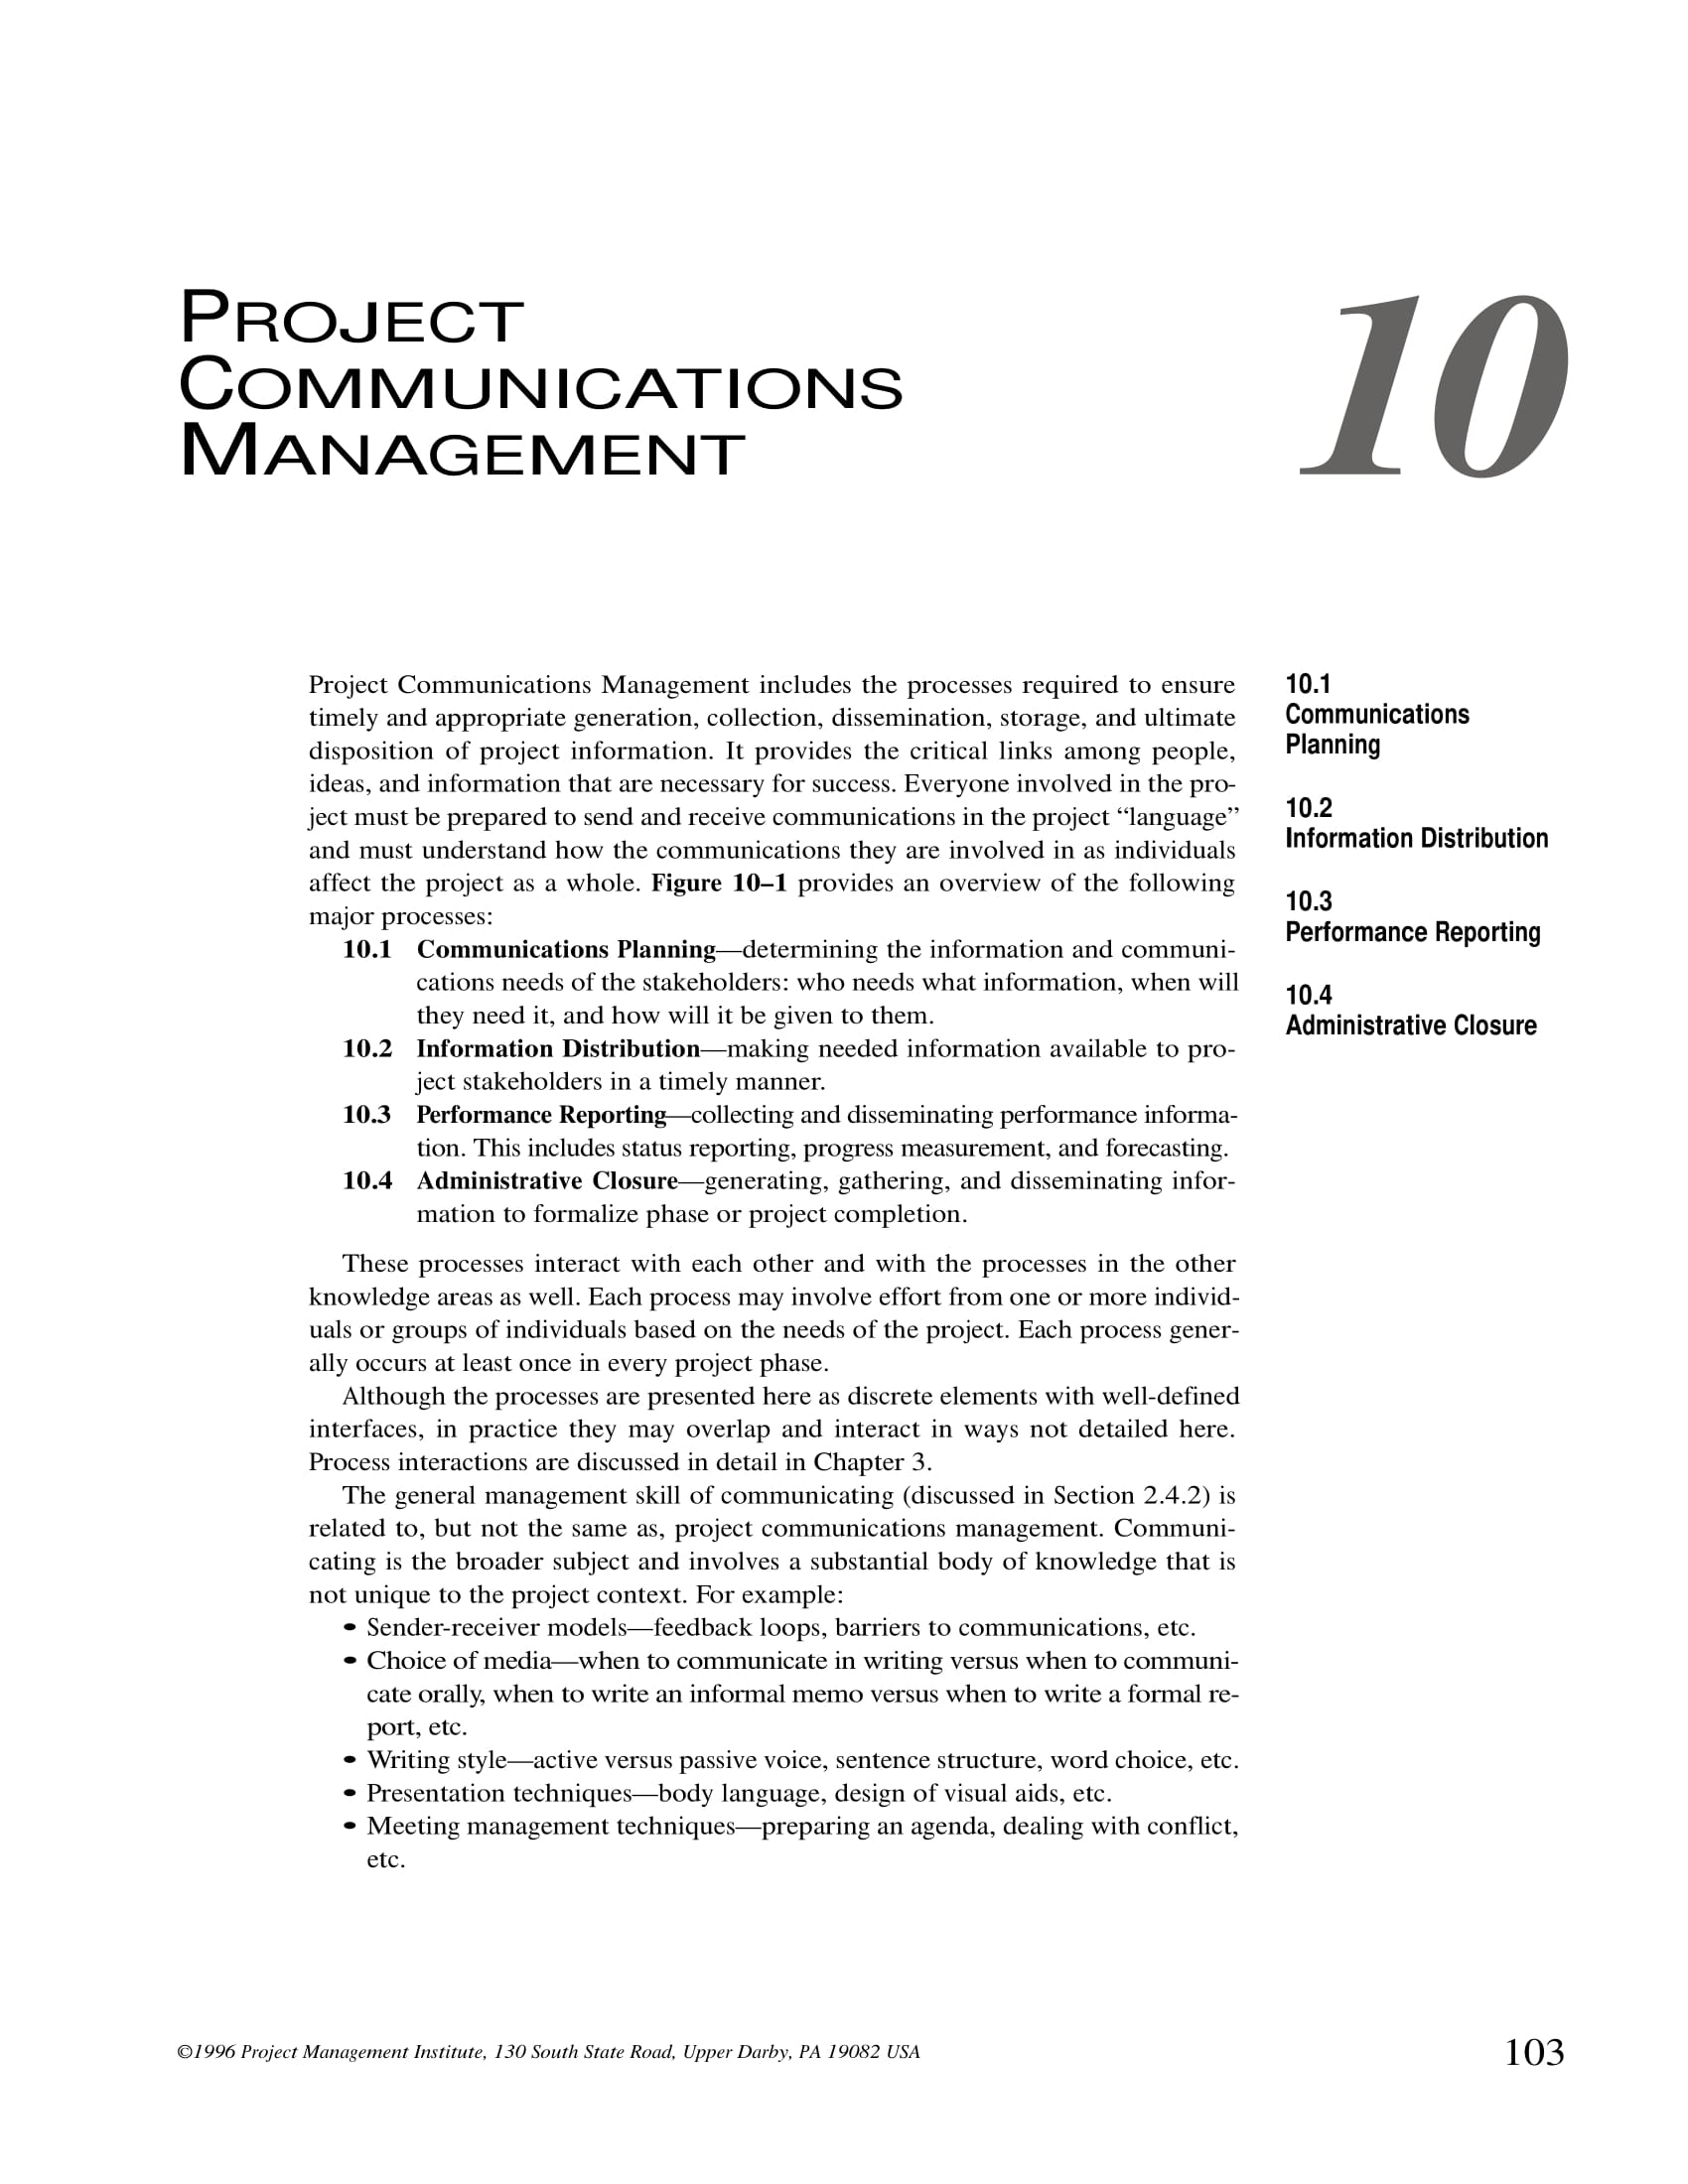 project communication management plan example